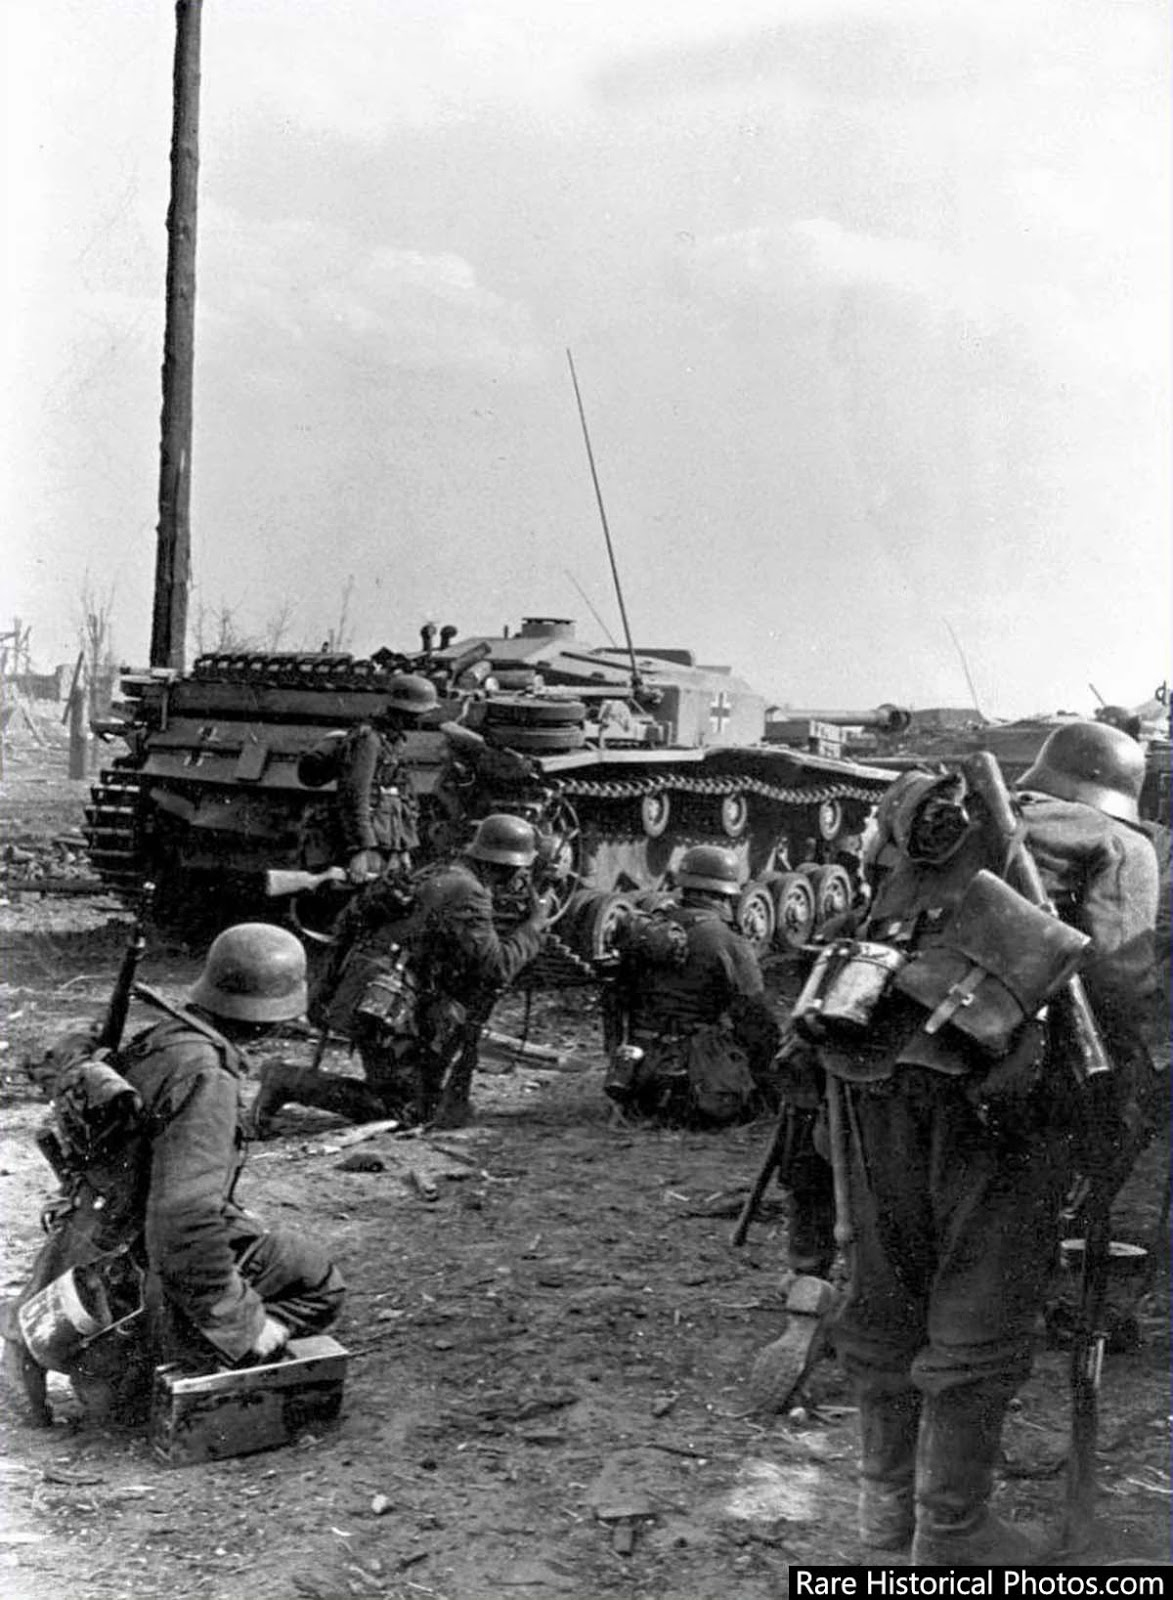 Germans prepare to attack in the outskirts of Stalingrad; taking cover behind a Stug 3.